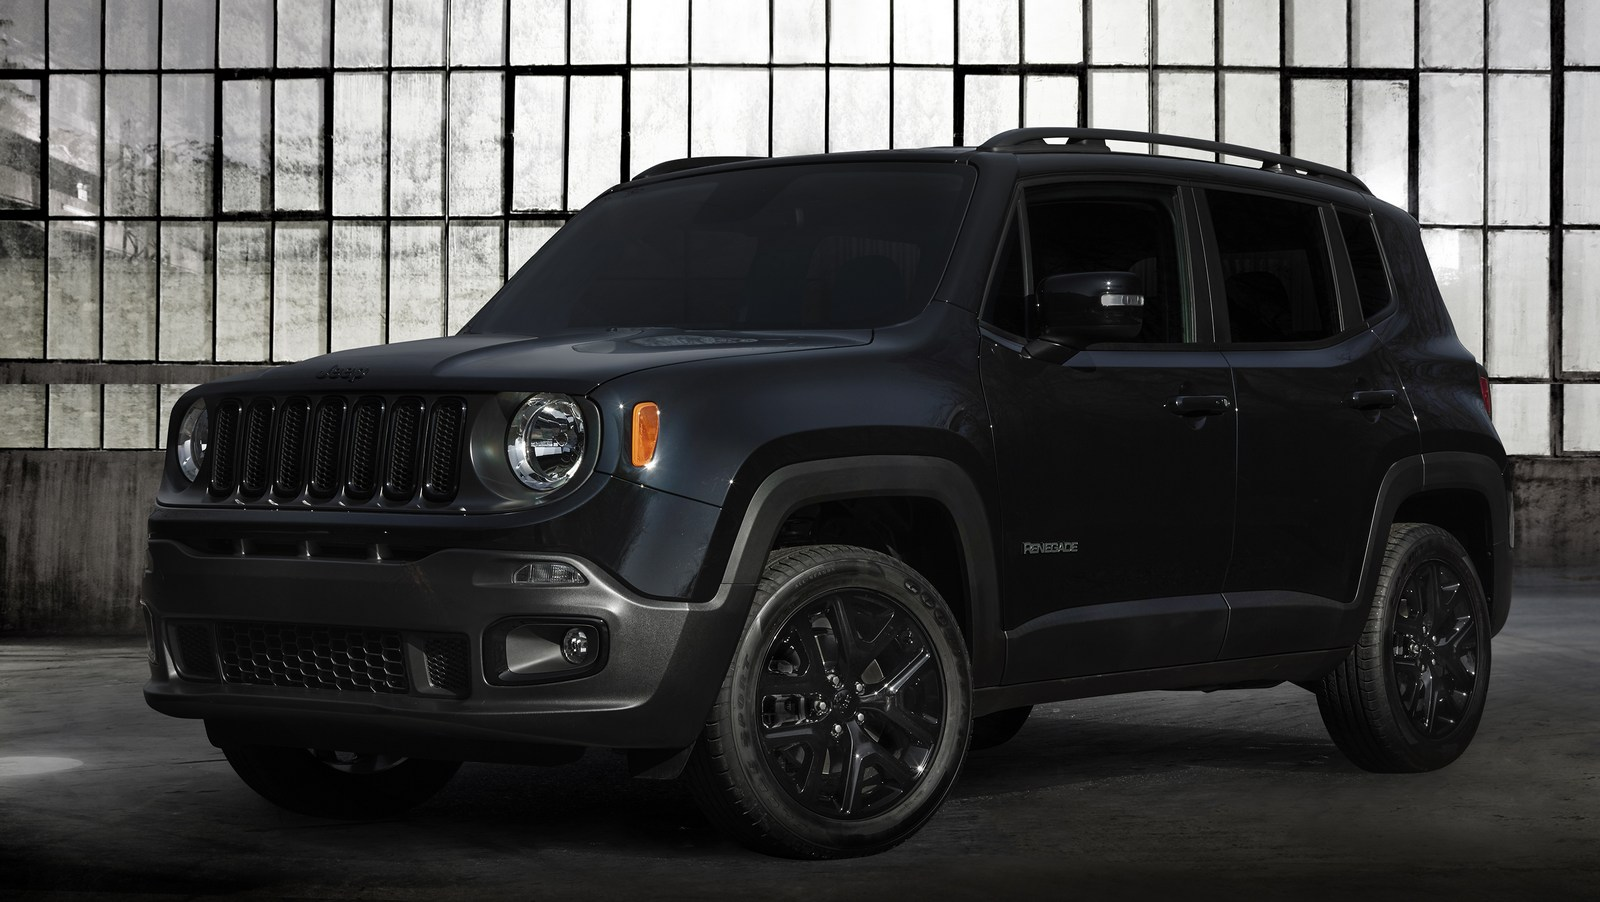 jeep renegade black trendy jeep renegade black with jeep renegade black best jeep renegade. Black Bedroom Furniture Sets. Home Design Ideas